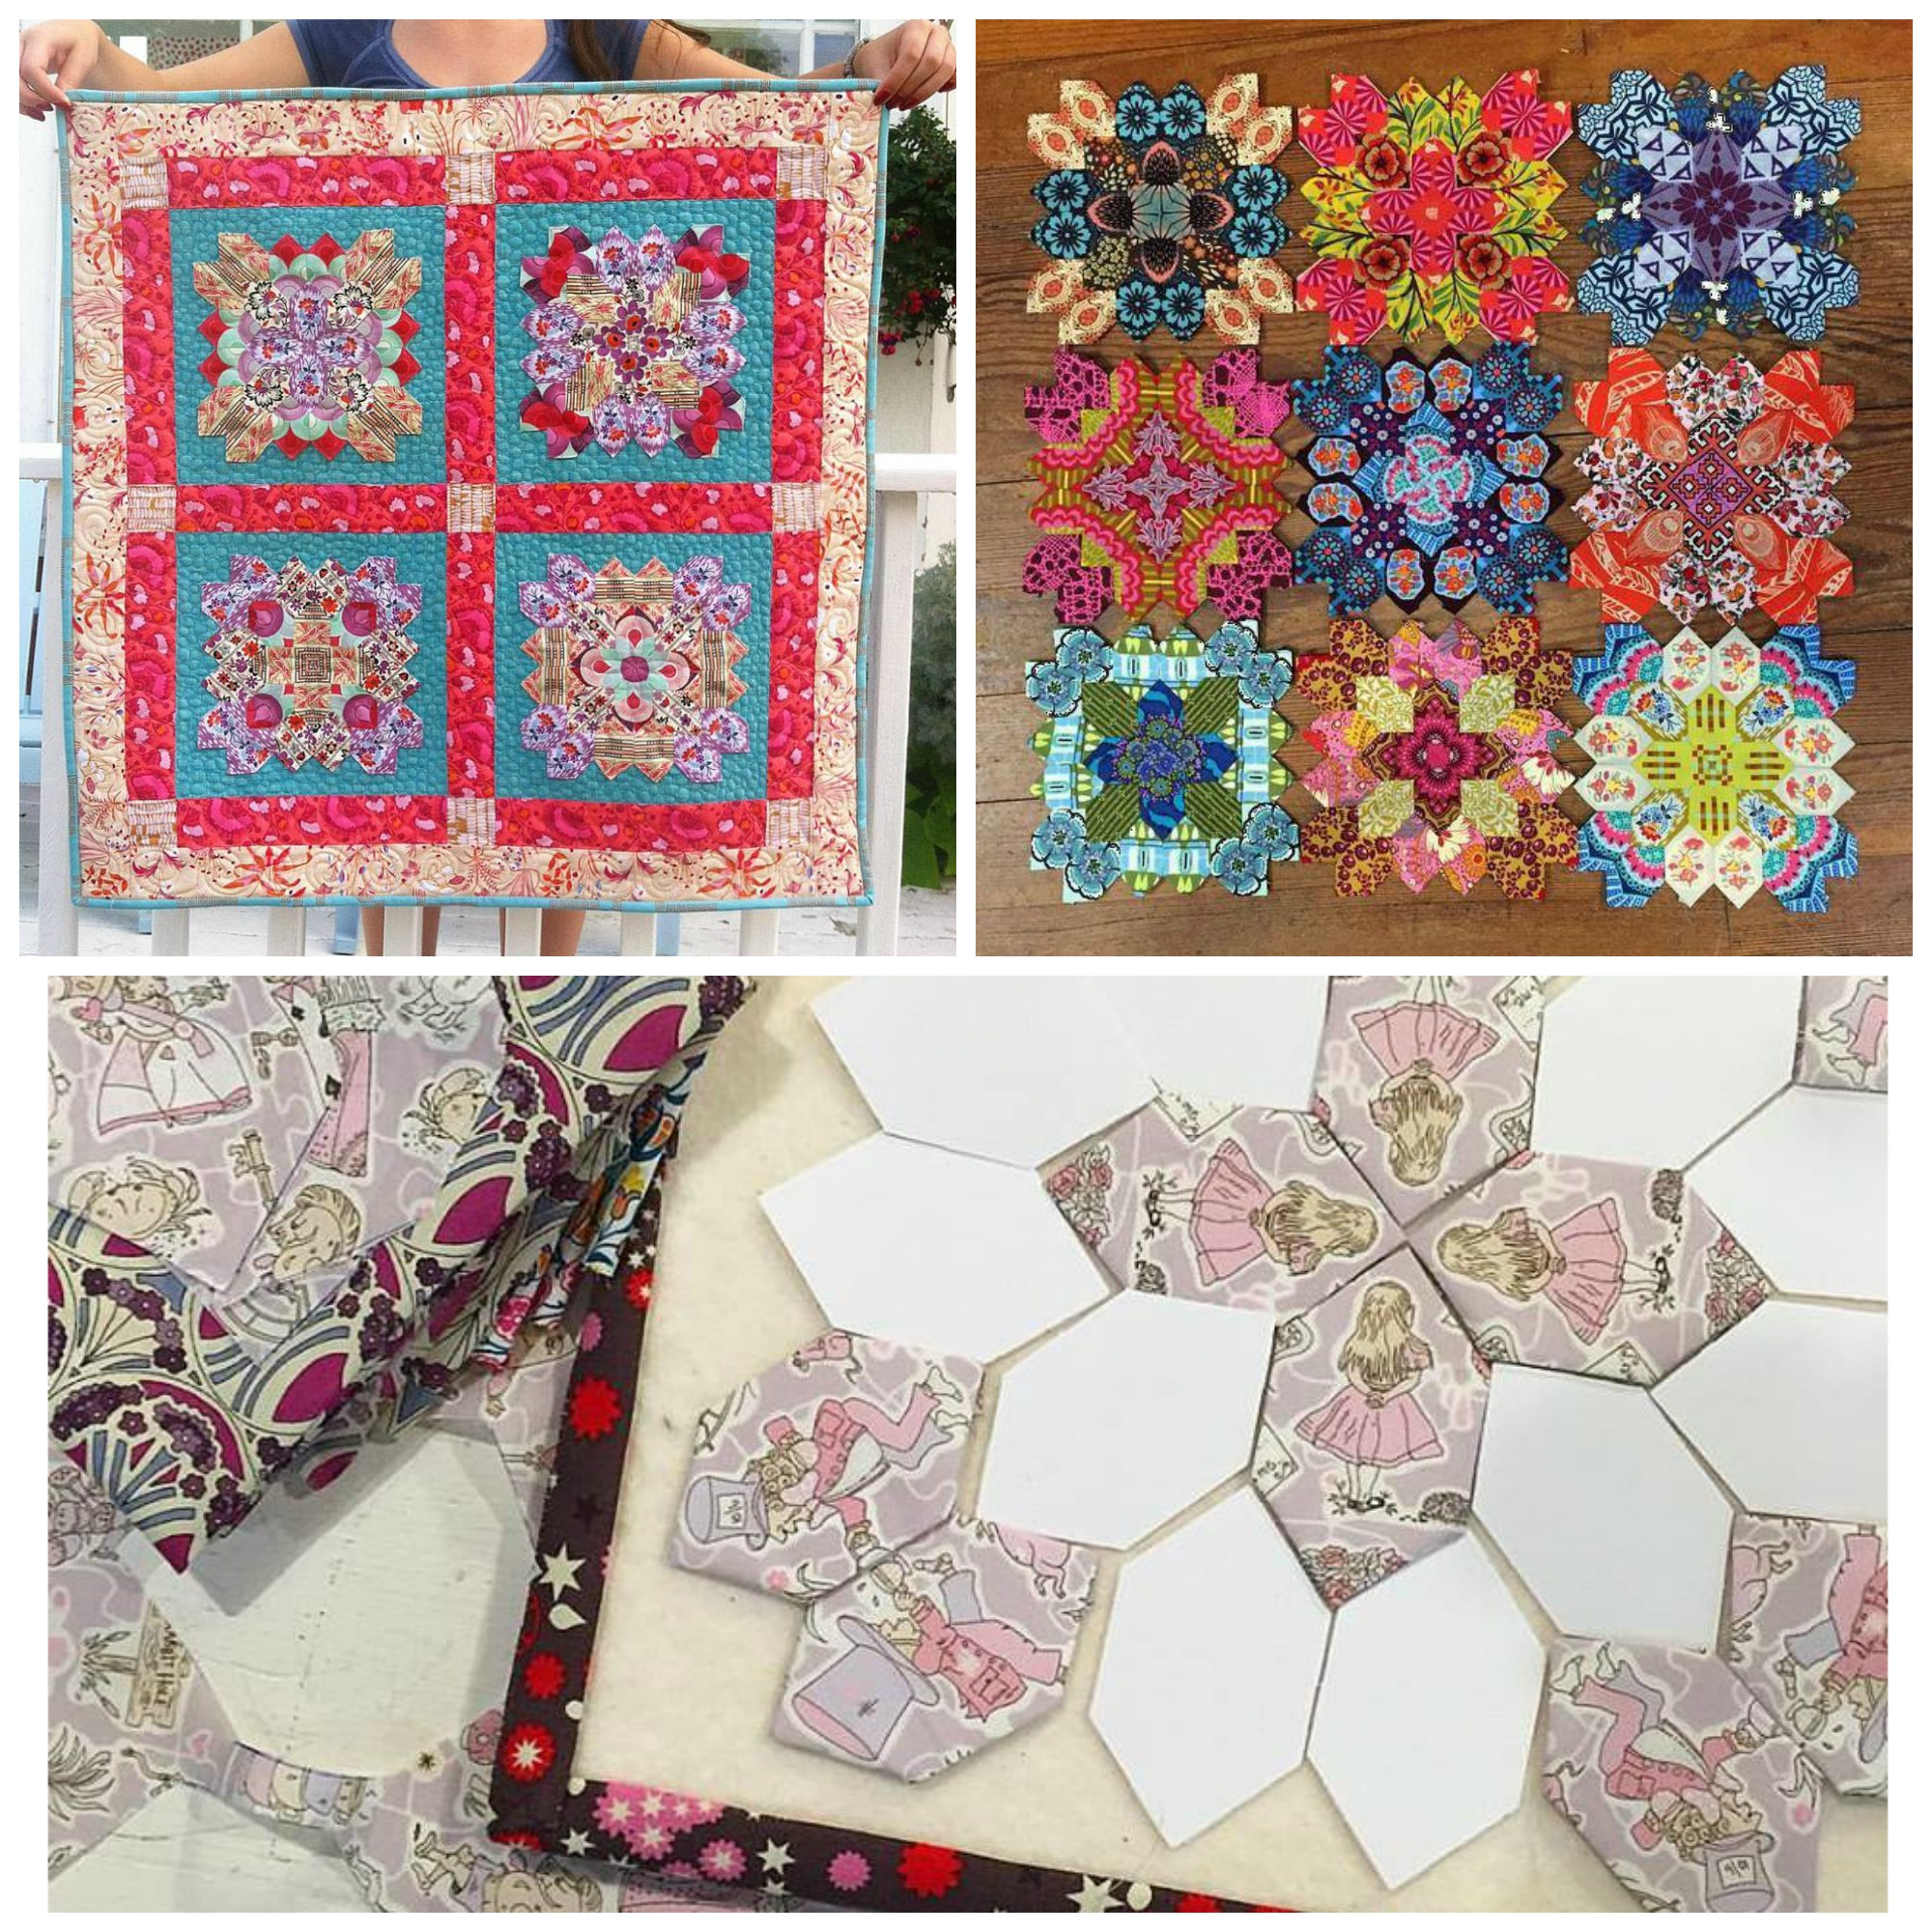 quilting to image news market be creative in guild the at villages quilt center presented savannah com quilters october of tag